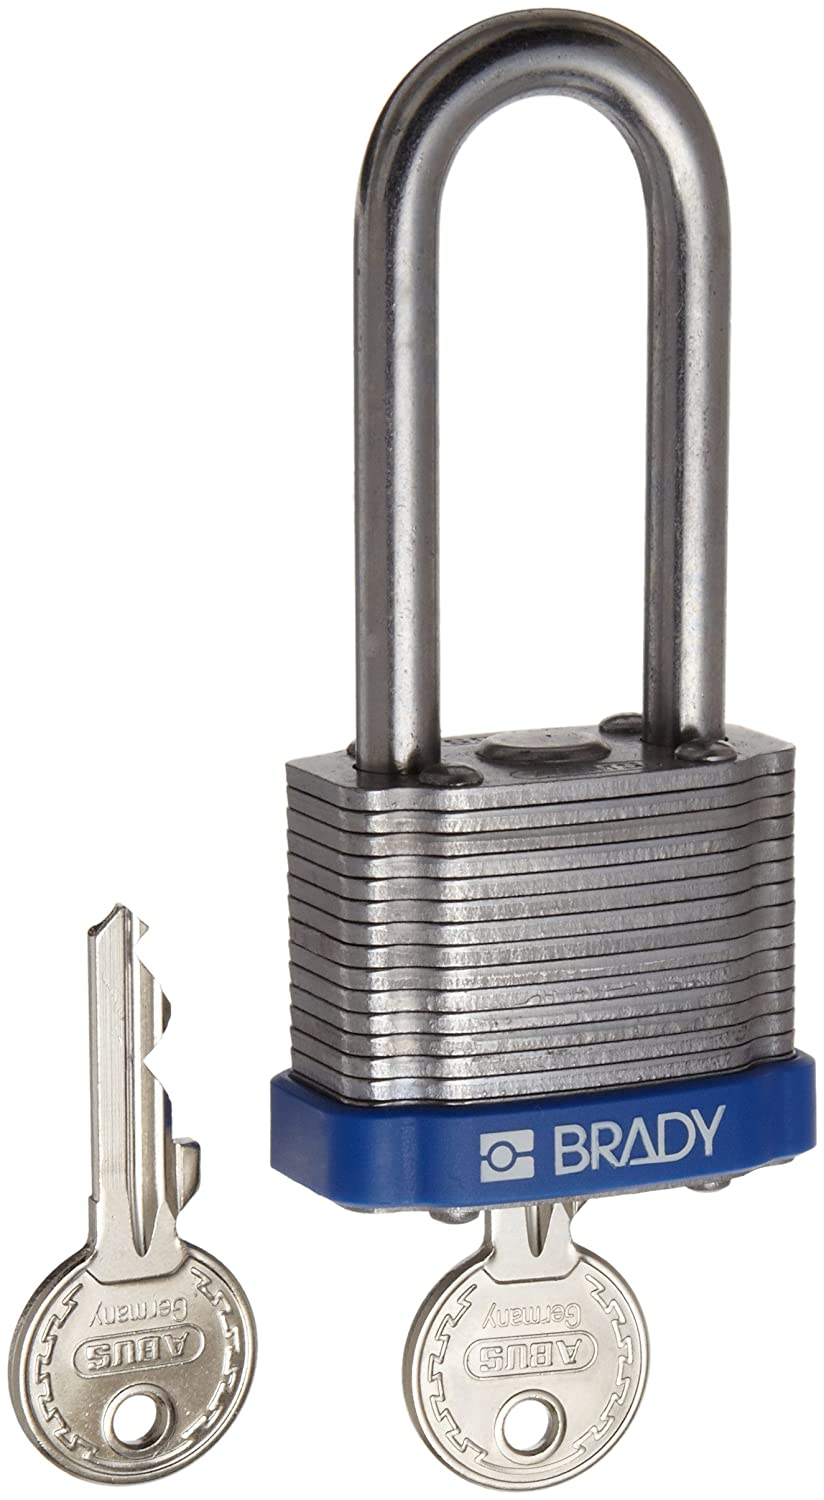 Pack of 1 Keyed Different Brady Steel Lockout//Tagout Padlock 2 Shackle Clearance Blue 1-1//3 Body Length 2 Shackle Clearance 99528 1-1//3 Body Length